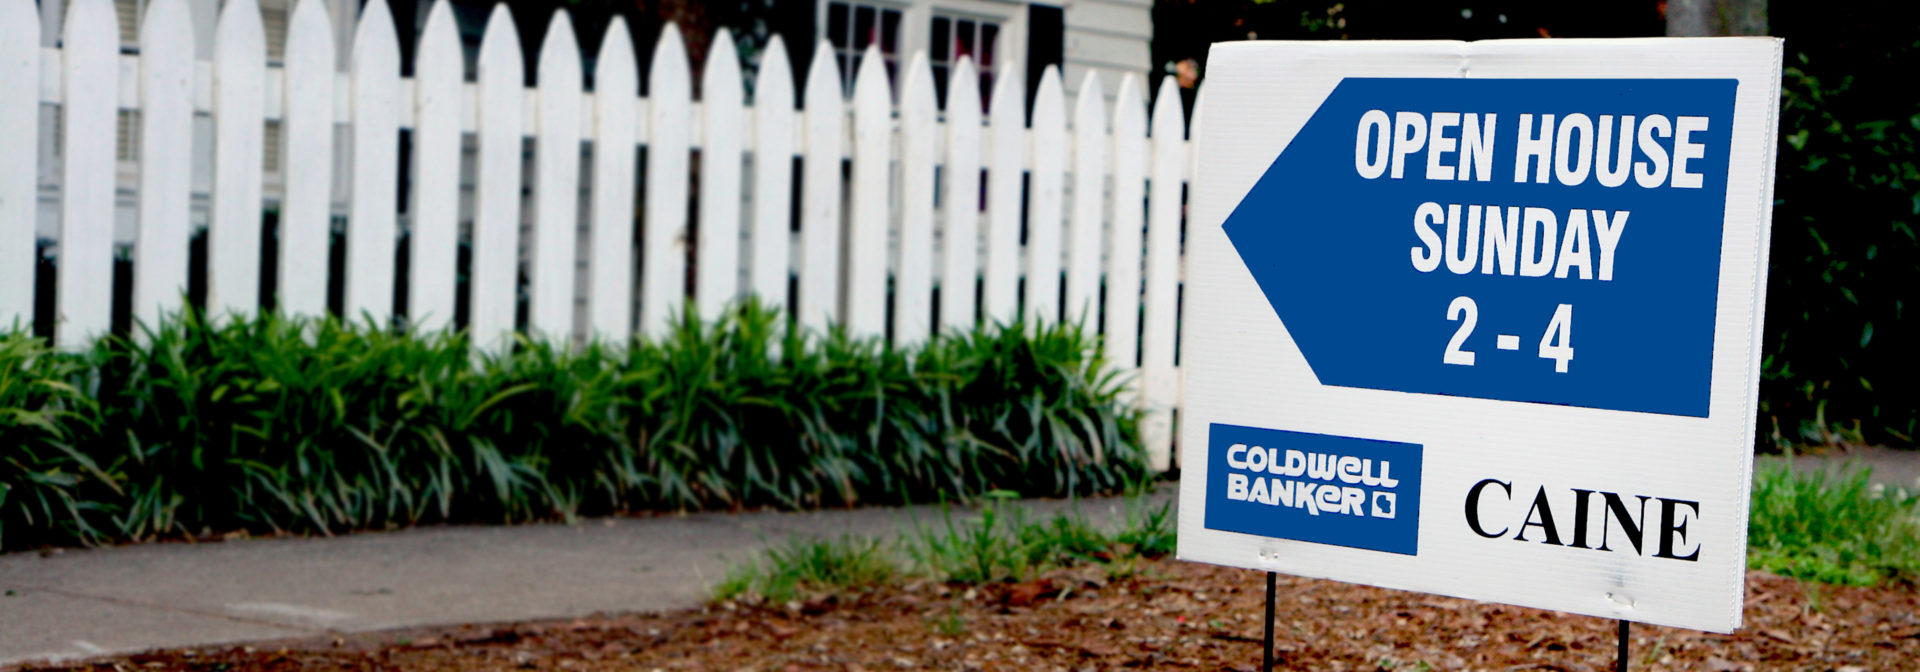 coldwell-banker-caine-open-houses